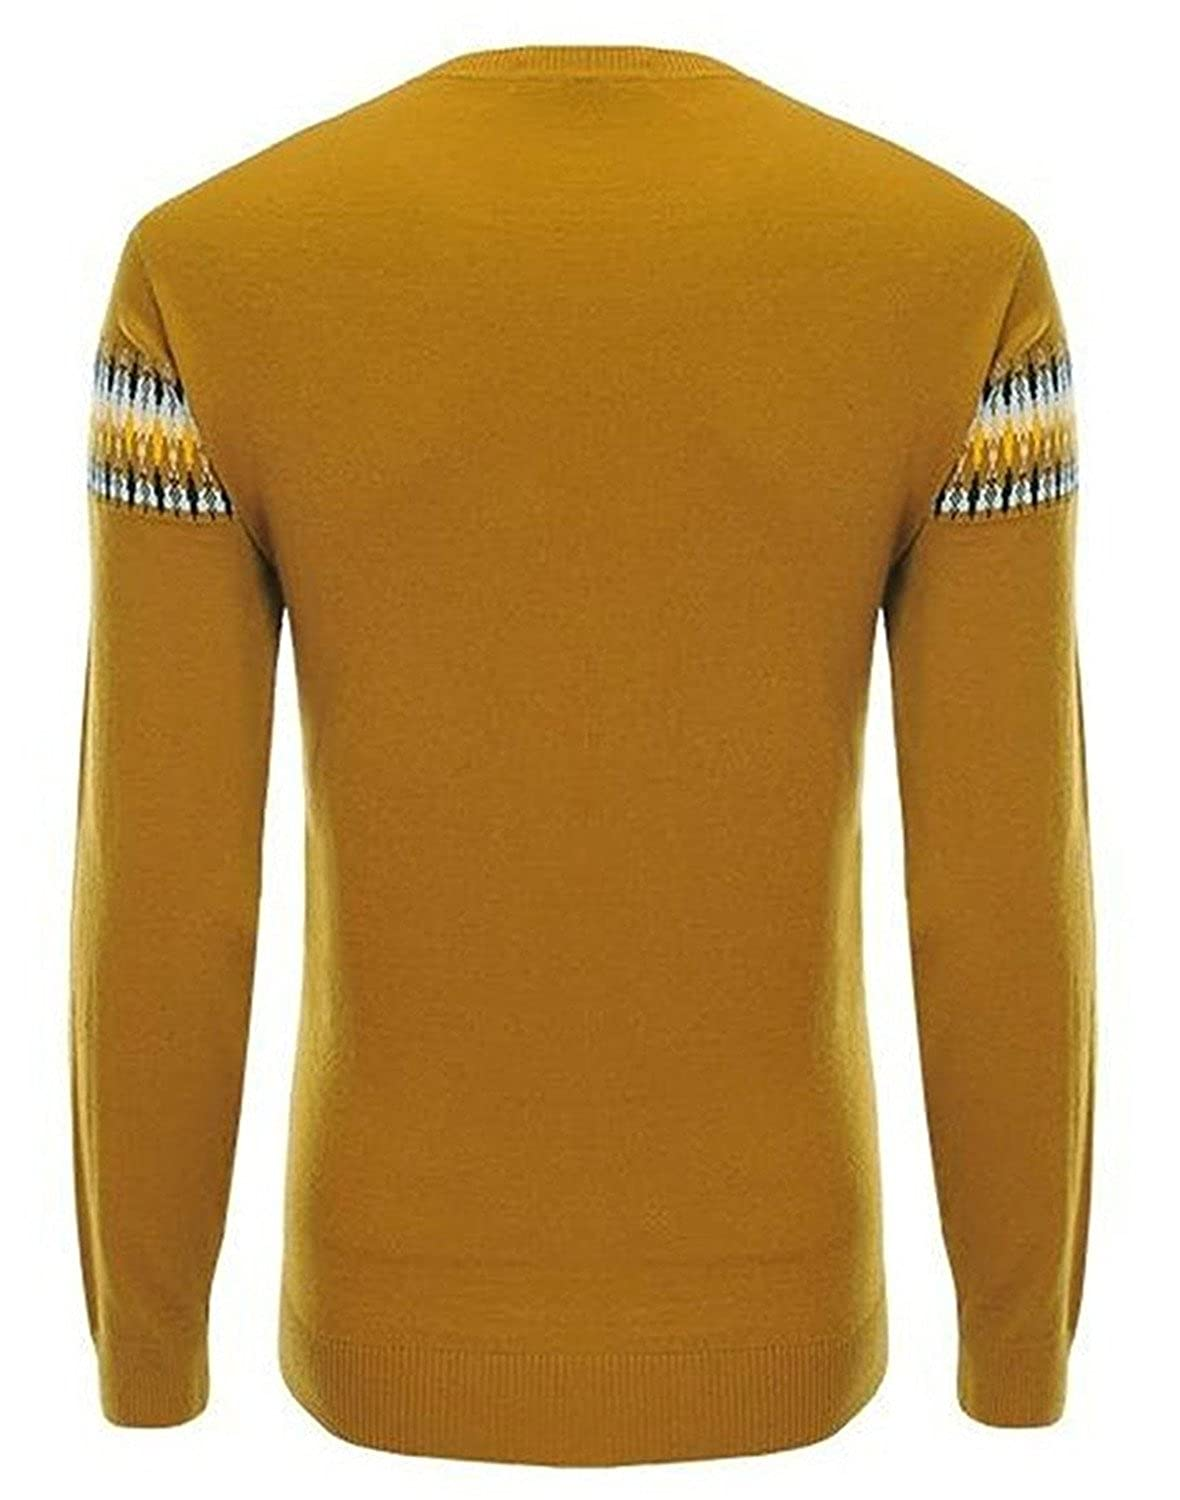 Kaured Stylist Mens Knit Print Slim Fit Scoop Neck Pullover Sweaters